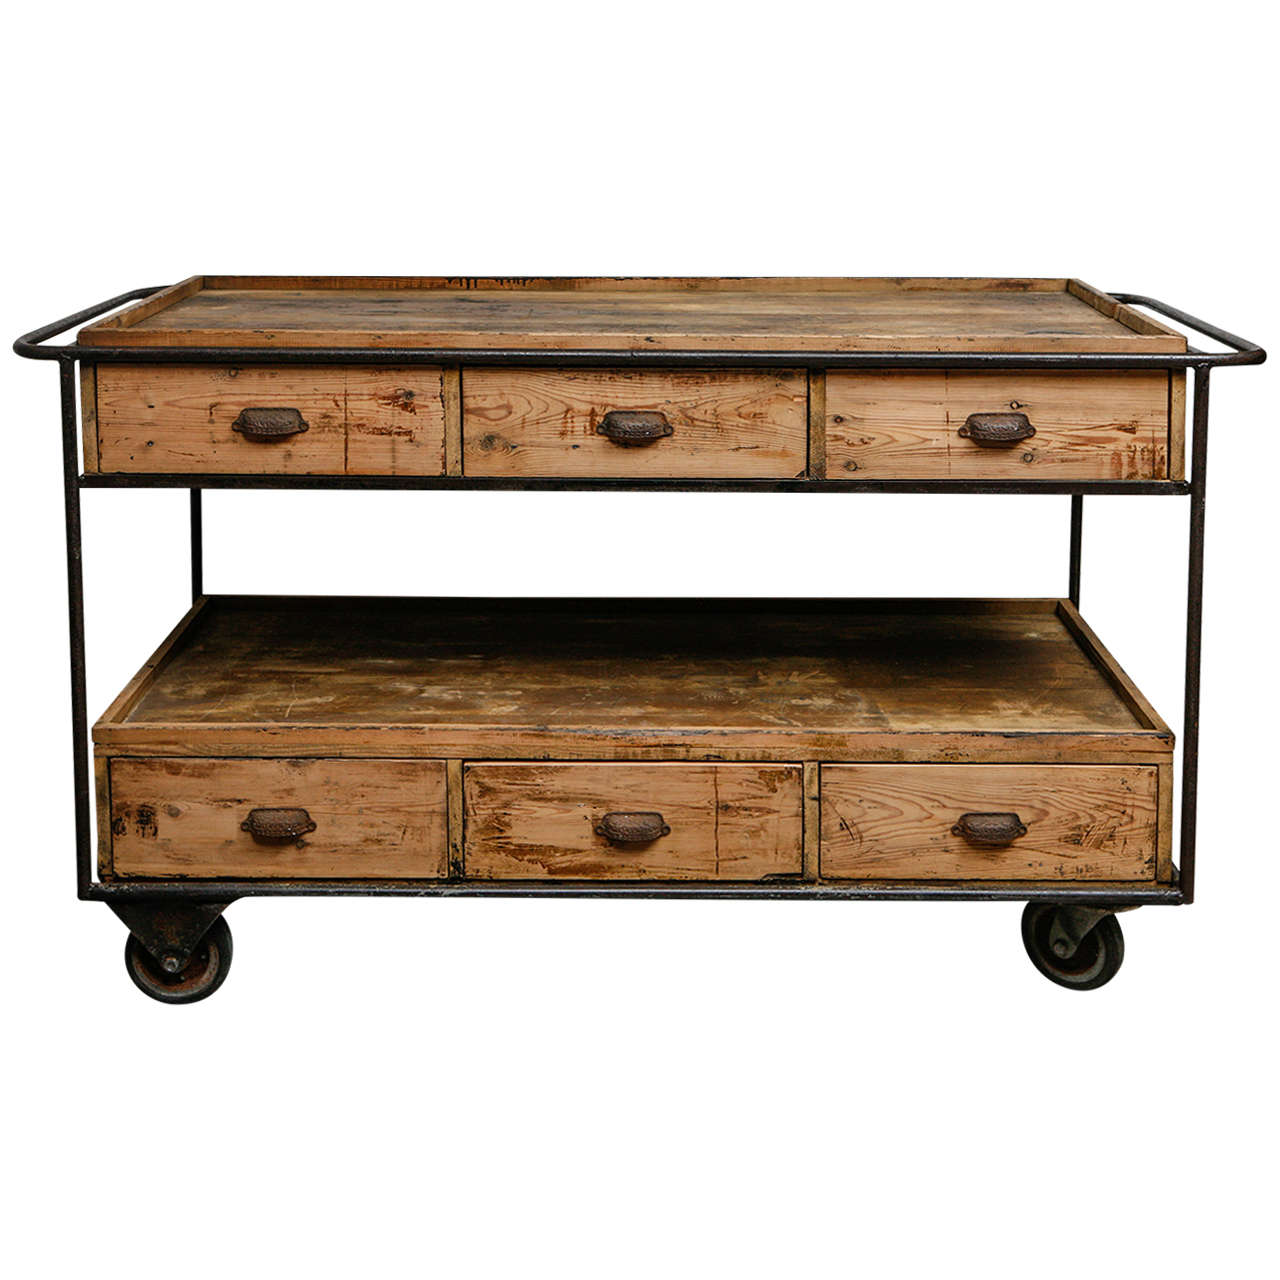 Sideboard Industrial industrial trolley sideboard circa 1900 at 1stdibs